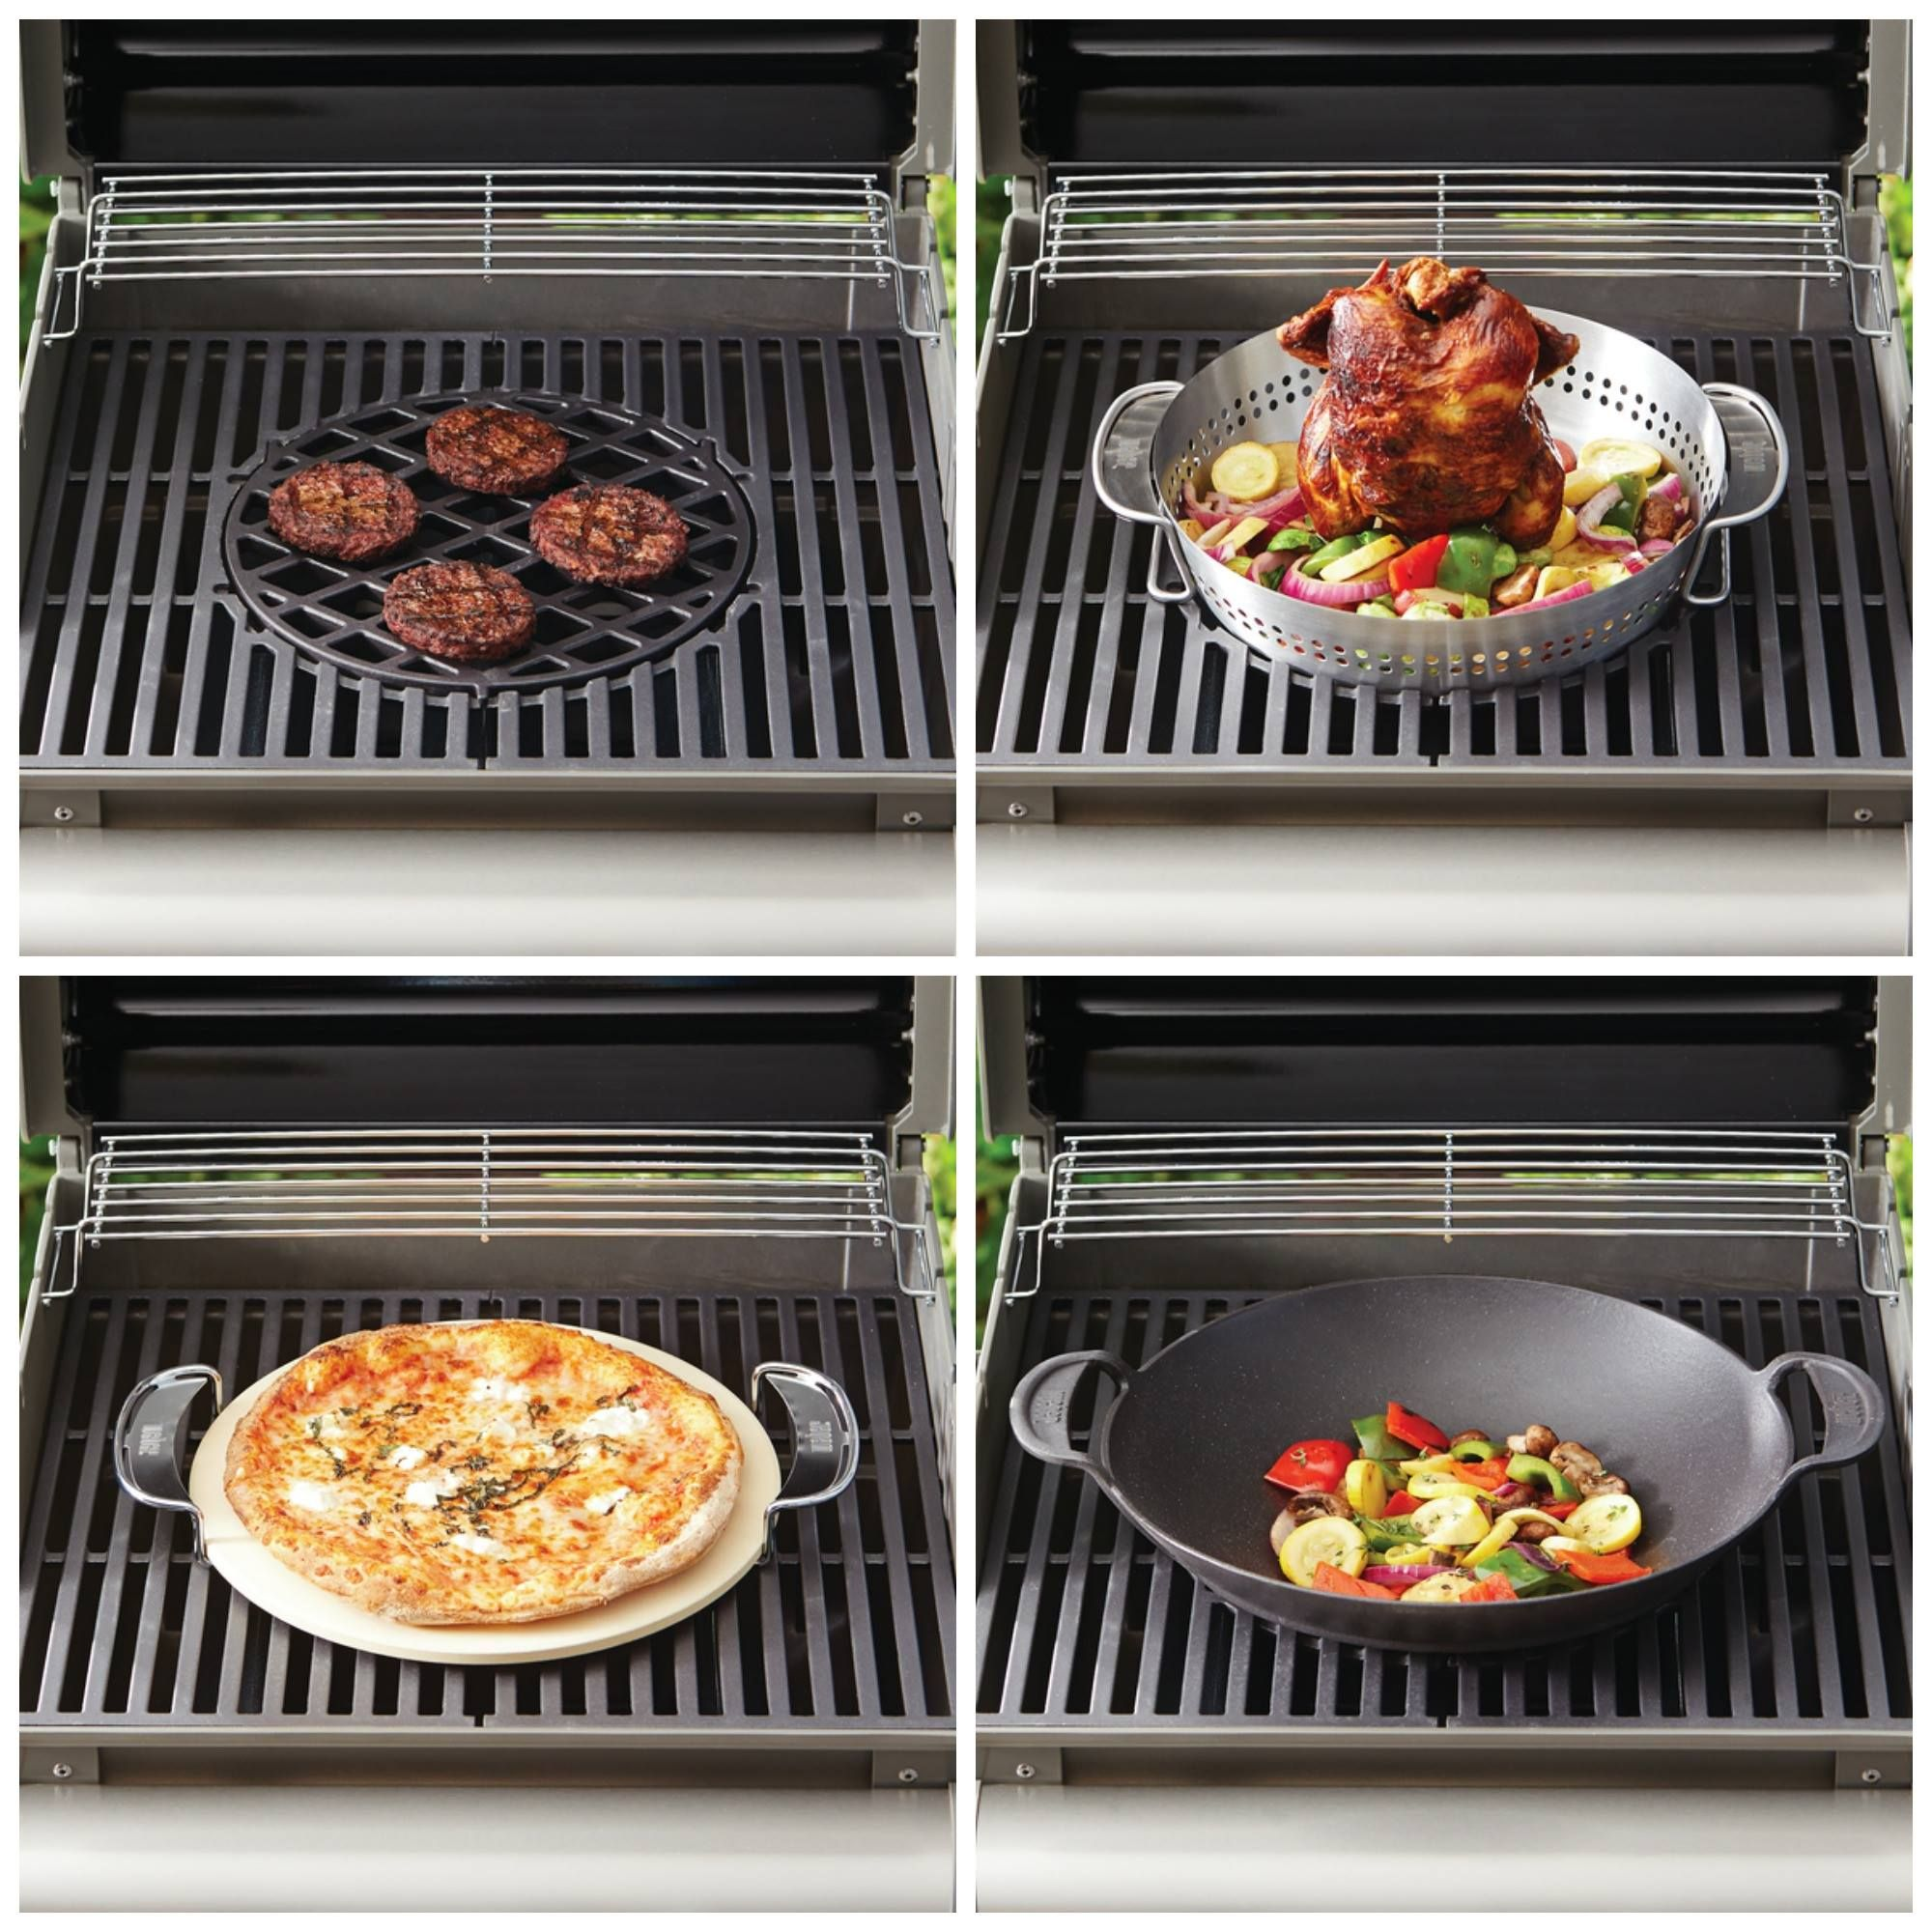 Gourmet Bbq System With The Weber Spirit Gourmet Bbq System You Ll Be Making More